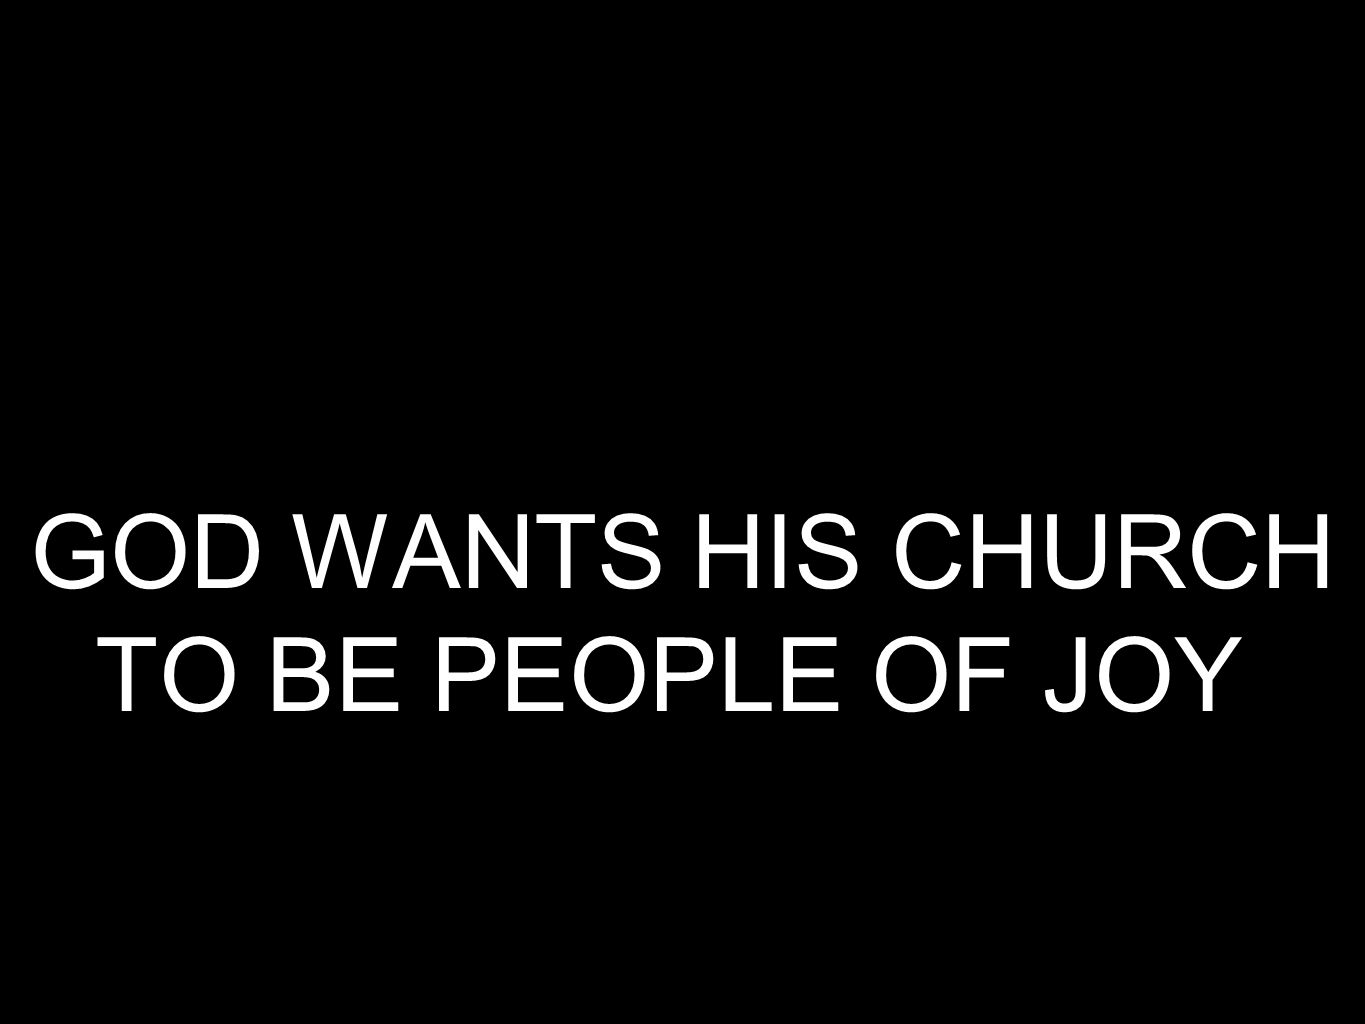 GOD WANTS HIS CHURCH TO BE PEOPLE OF JOY